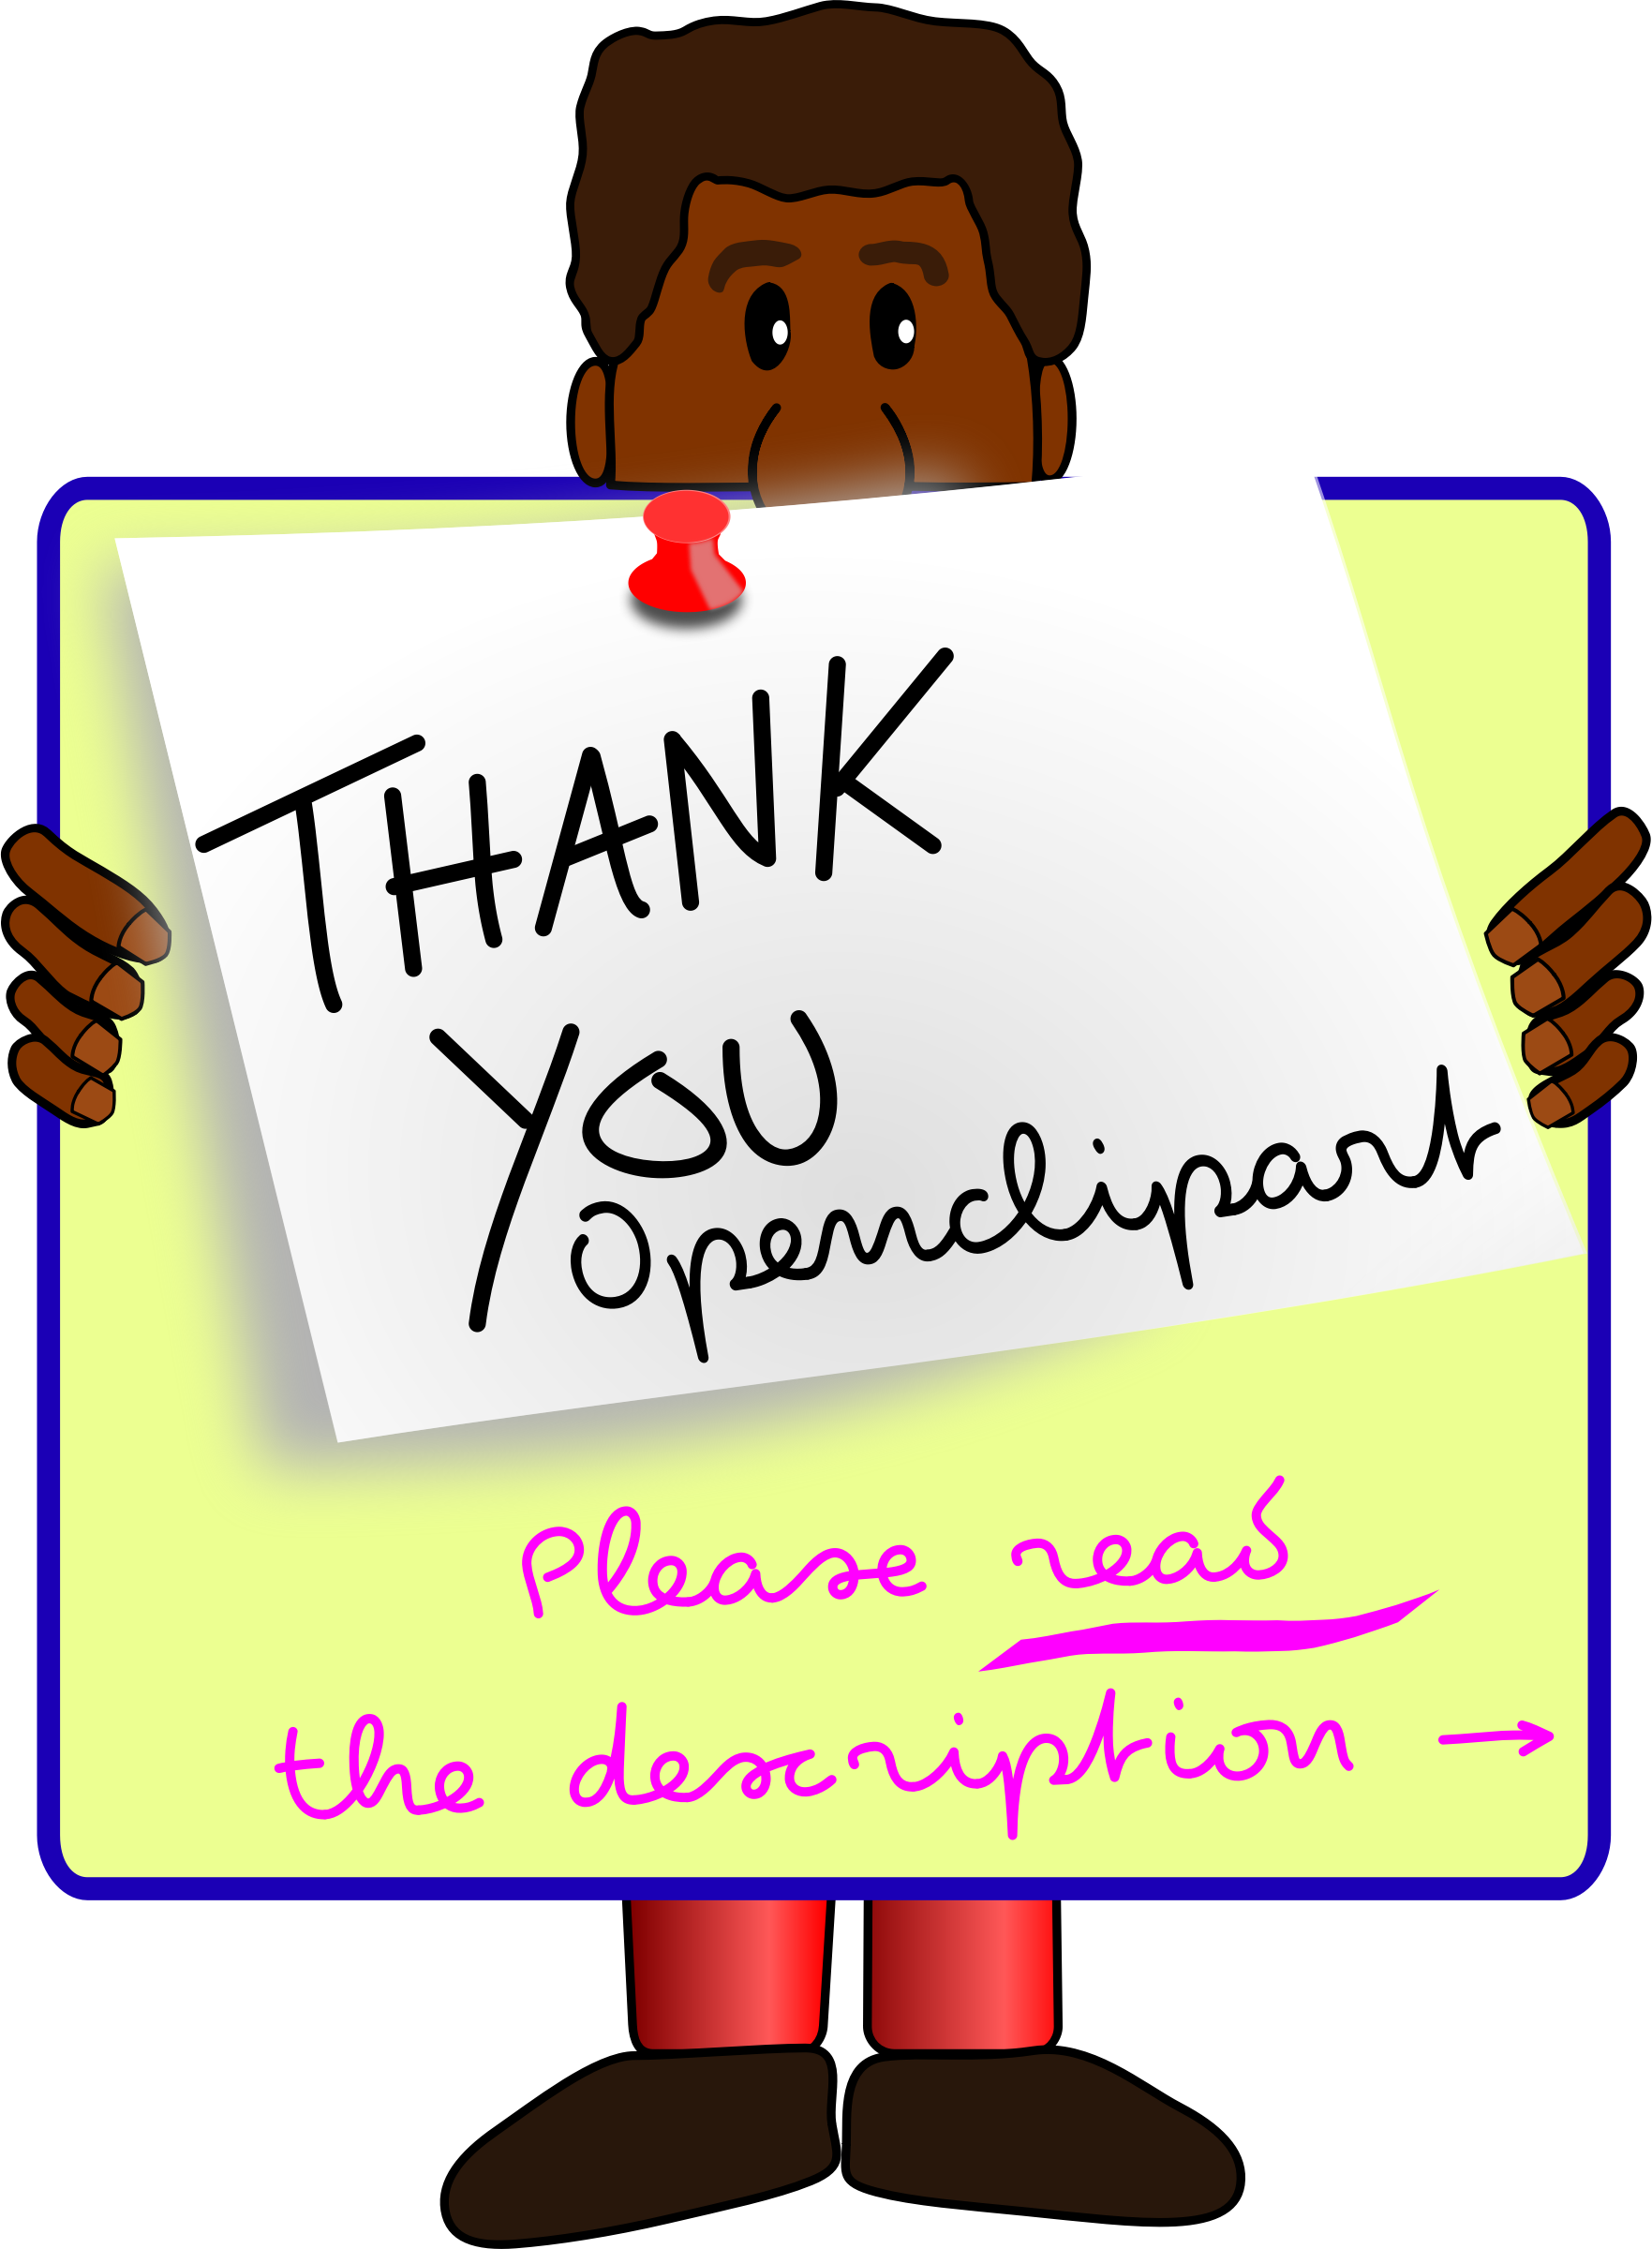 Thank you thanksgiving clipart graphic freeuse Clipart - The GʊGʊ-team is saying thank you to Openclipart graphic freeuse